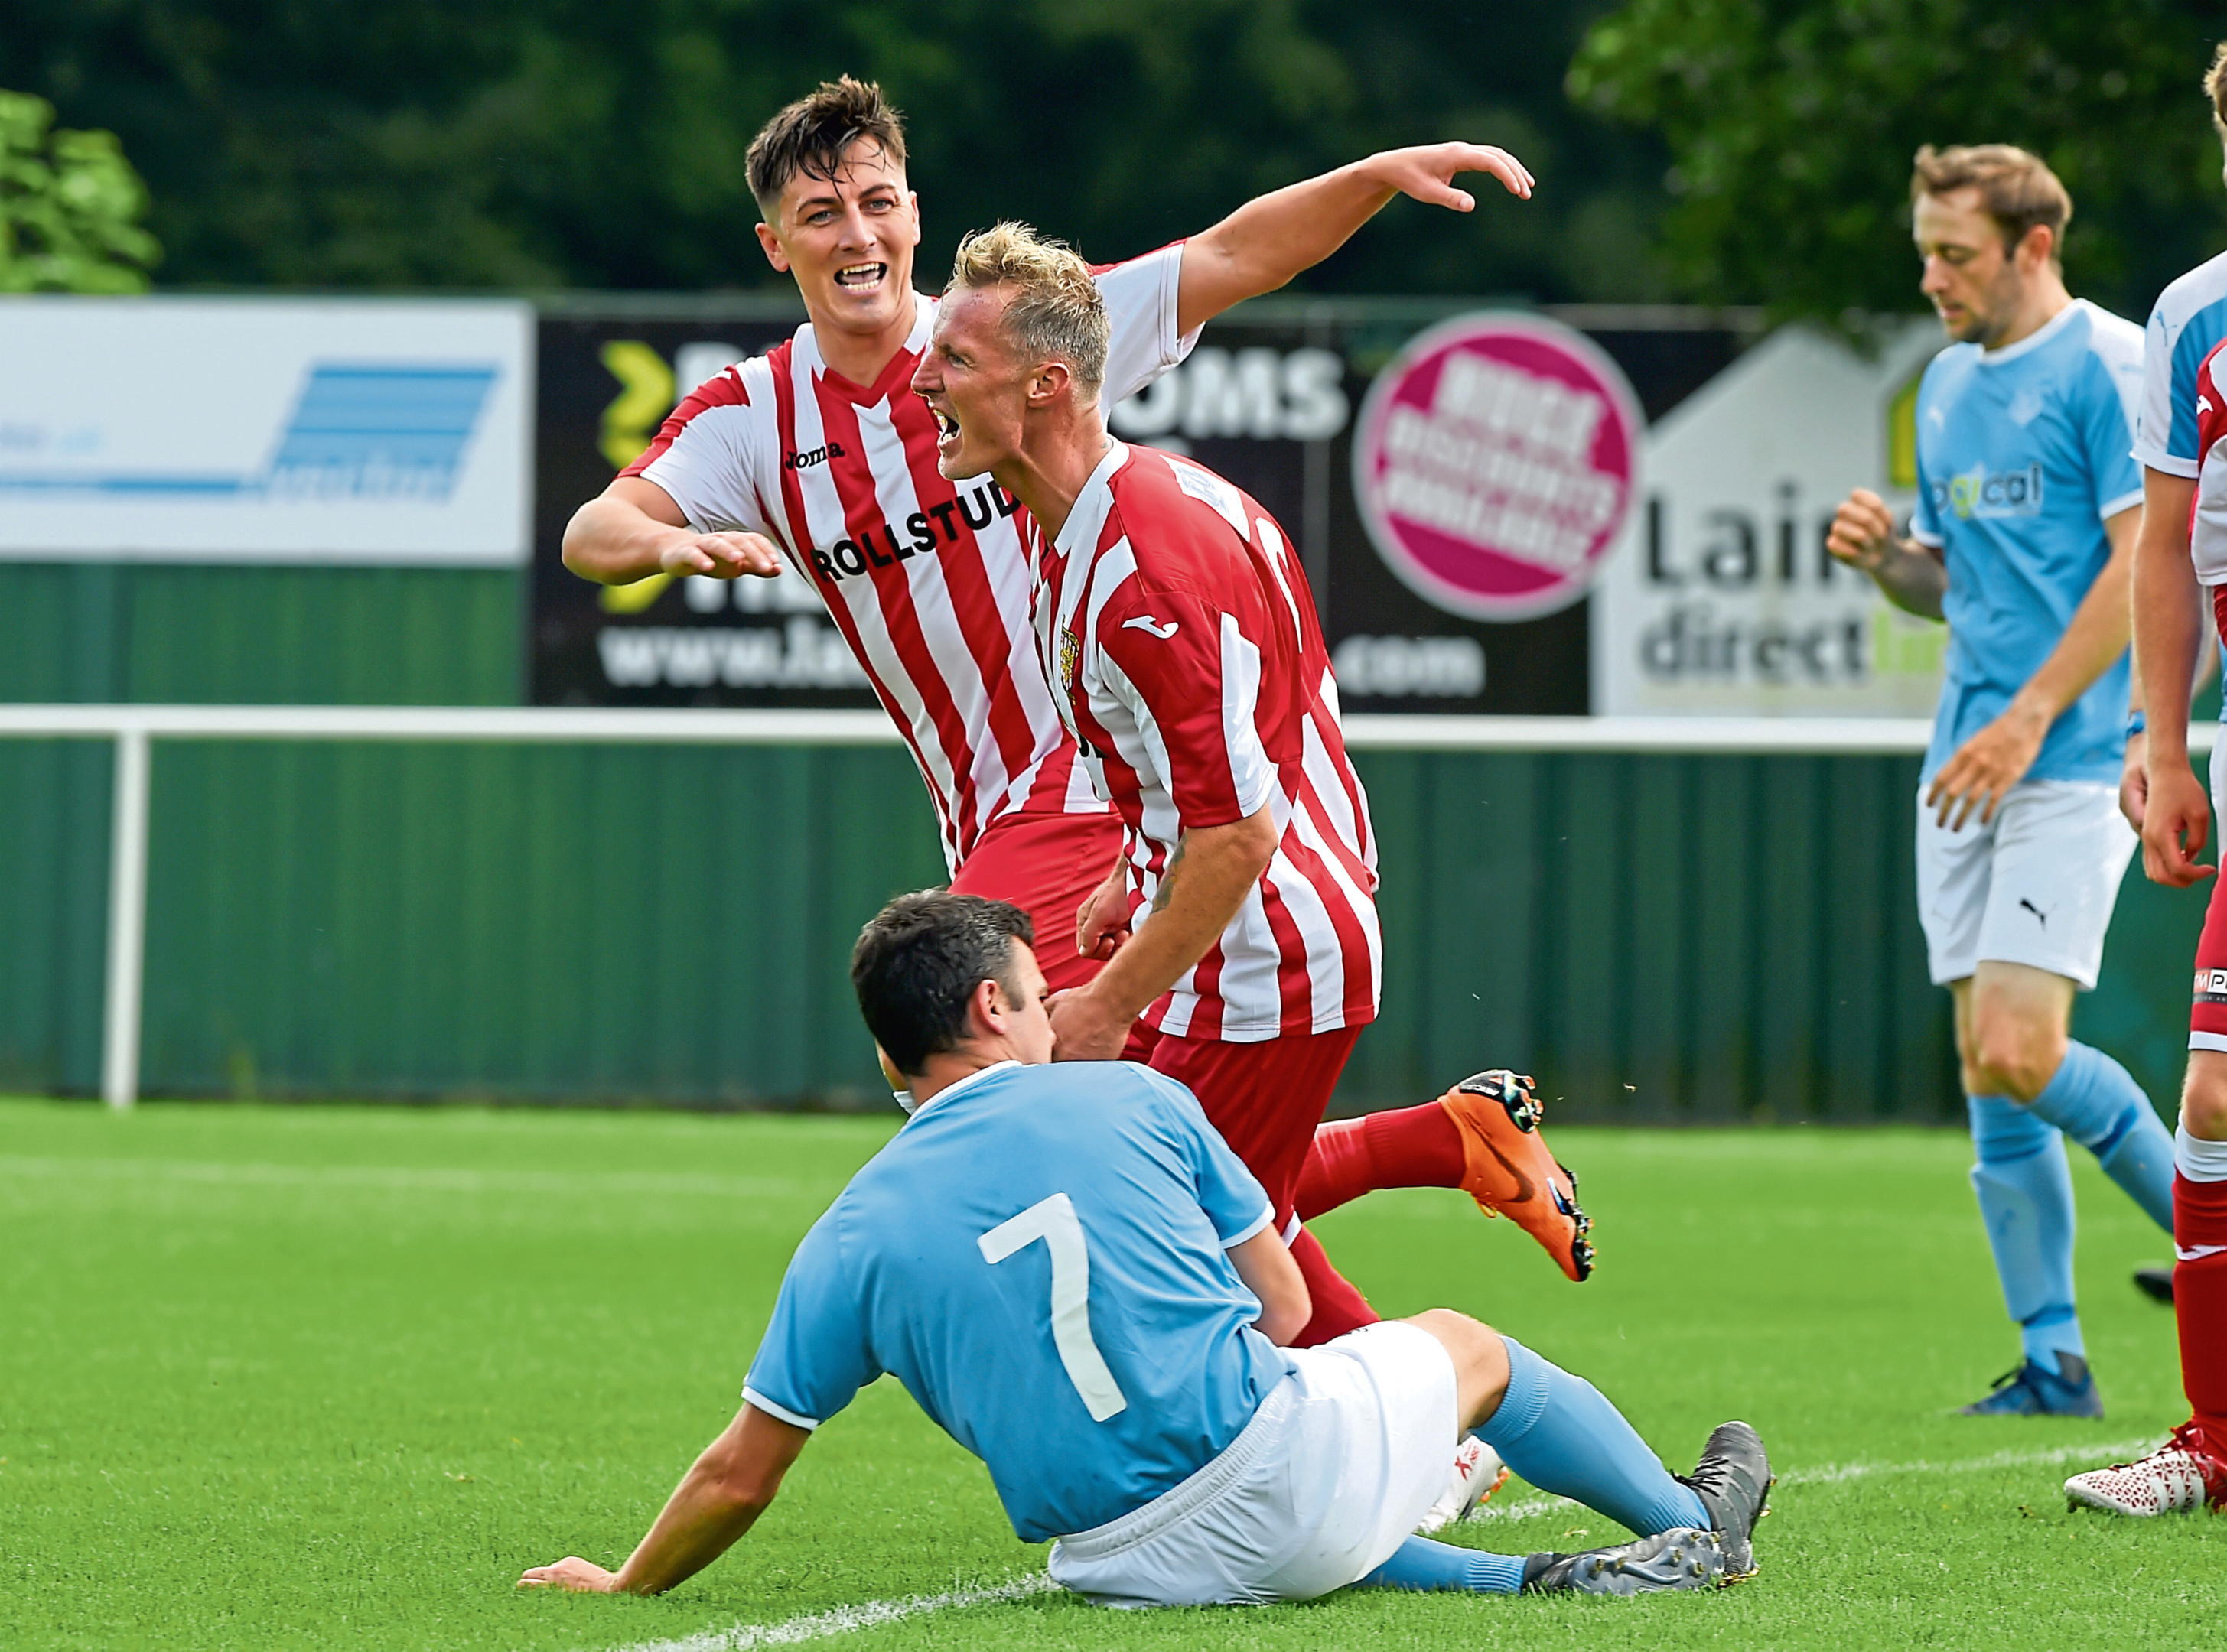 Formartine United will travel to Ireland to play Coleraine in the Irn-Bru Cup.